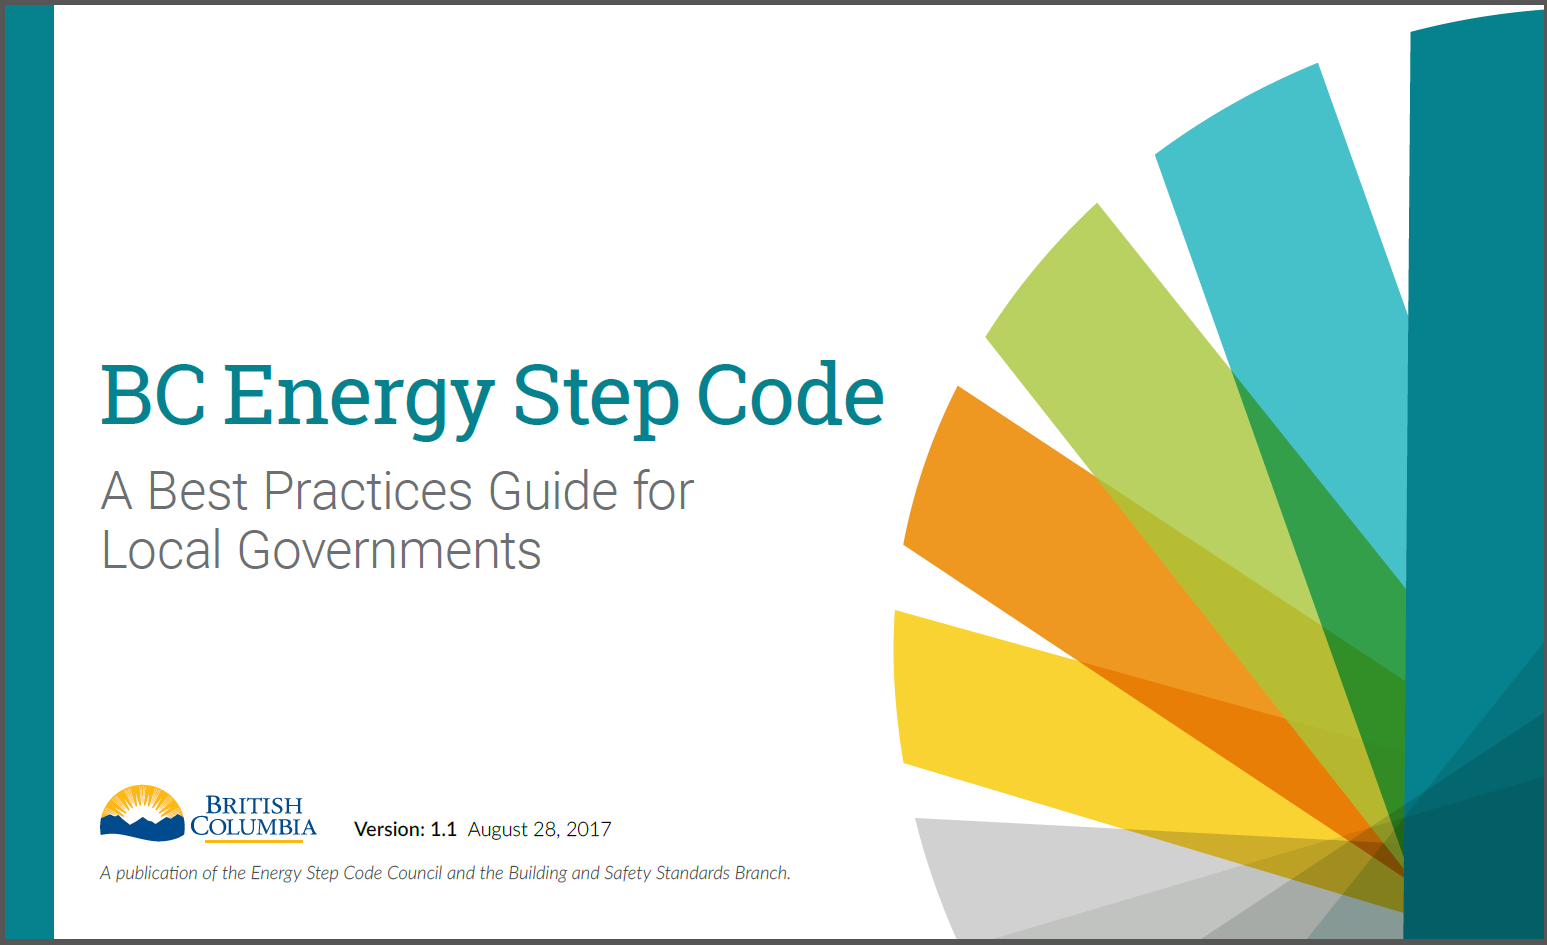 Image of the cover of the BC Energy Step Code Best Practices Guide for Local Governments